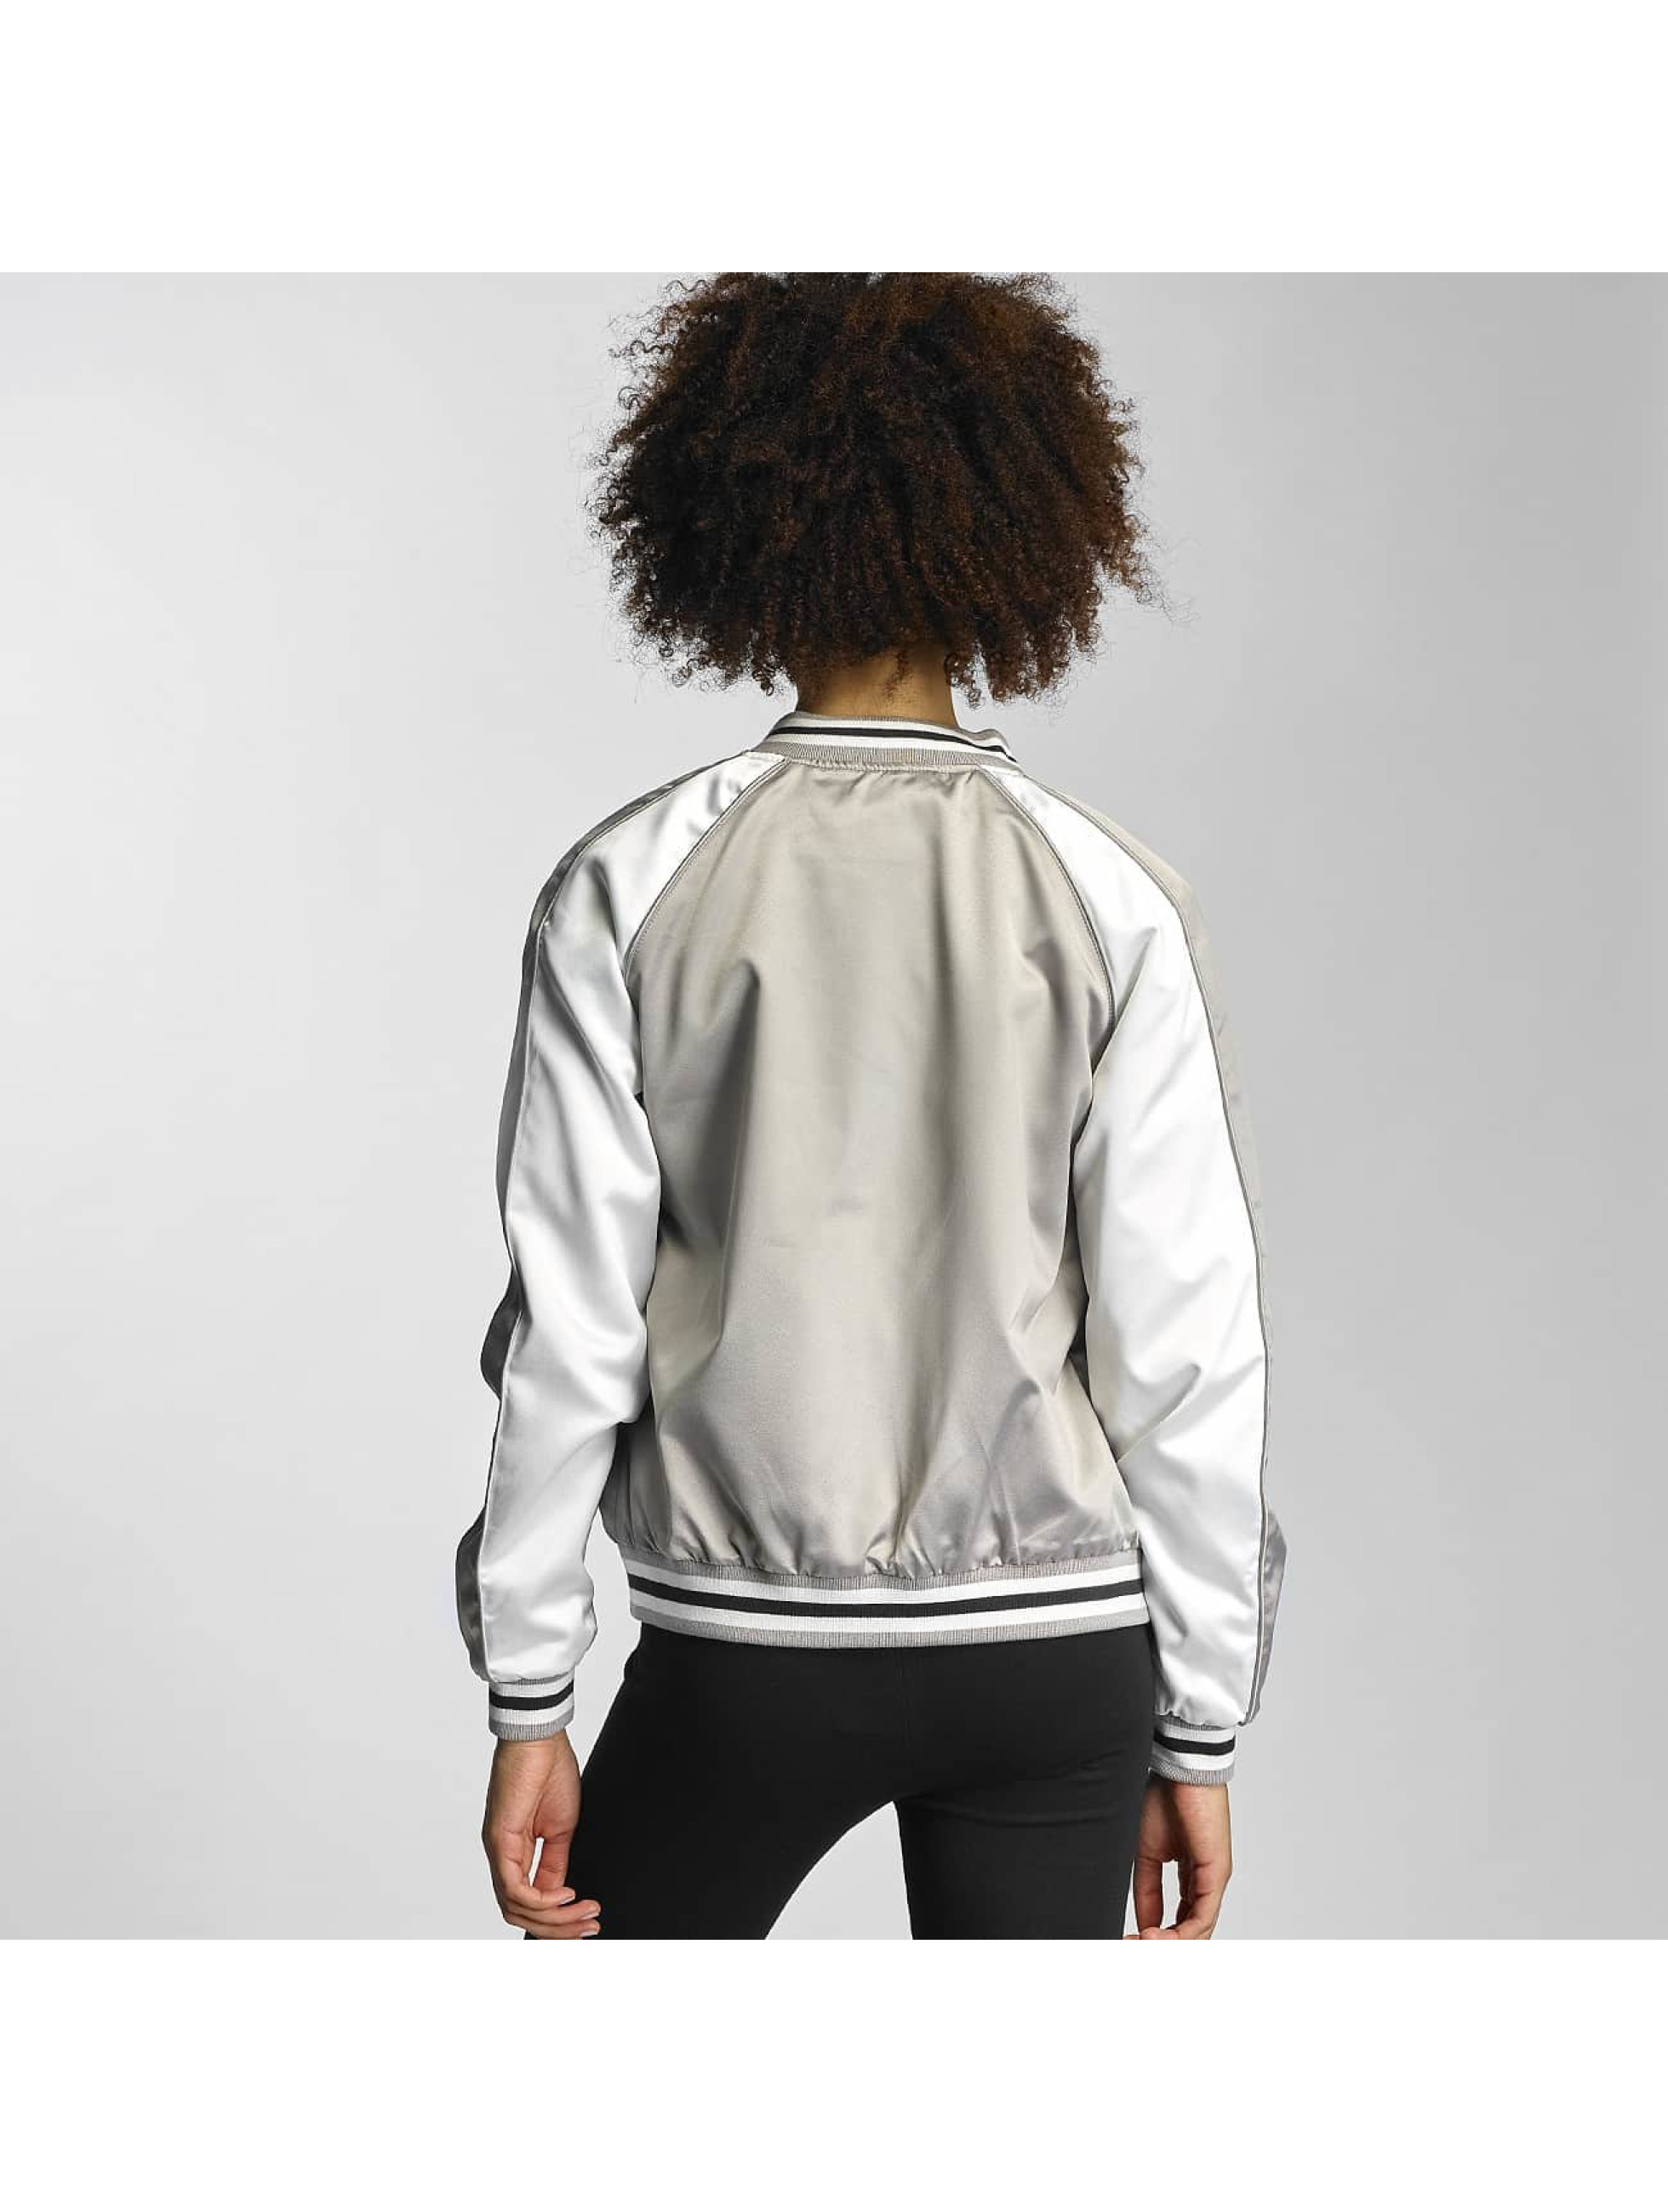 Urban Classics College Jacket 3 Tone Souvenir silver colored